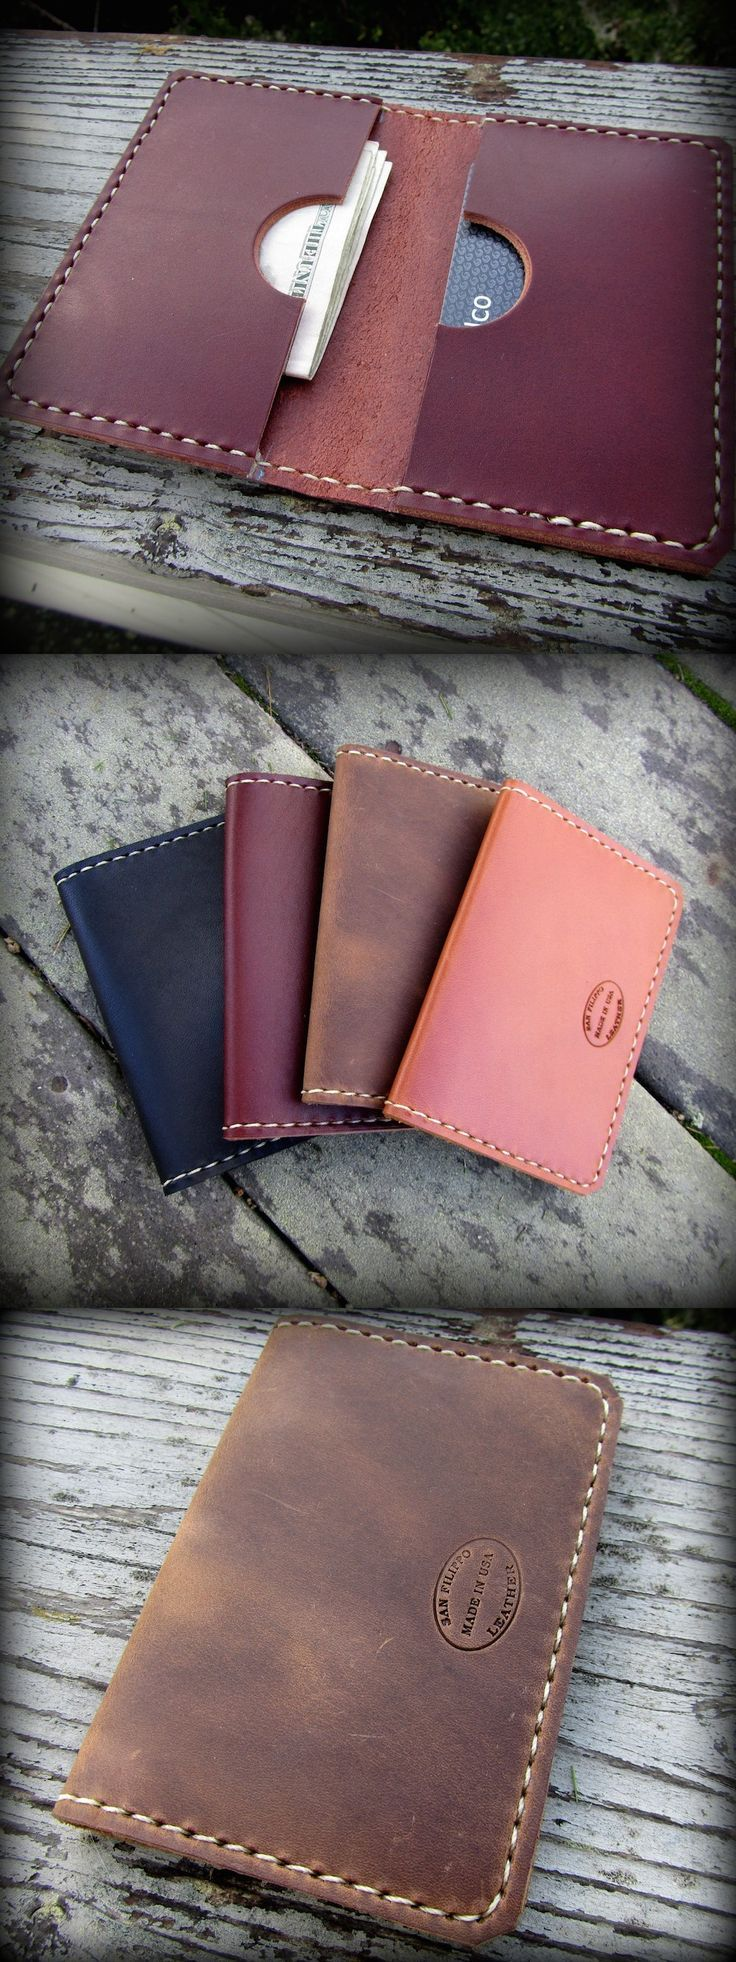 286 Best Leather Wallets Images By Chris Dorr On Pinterest Coin